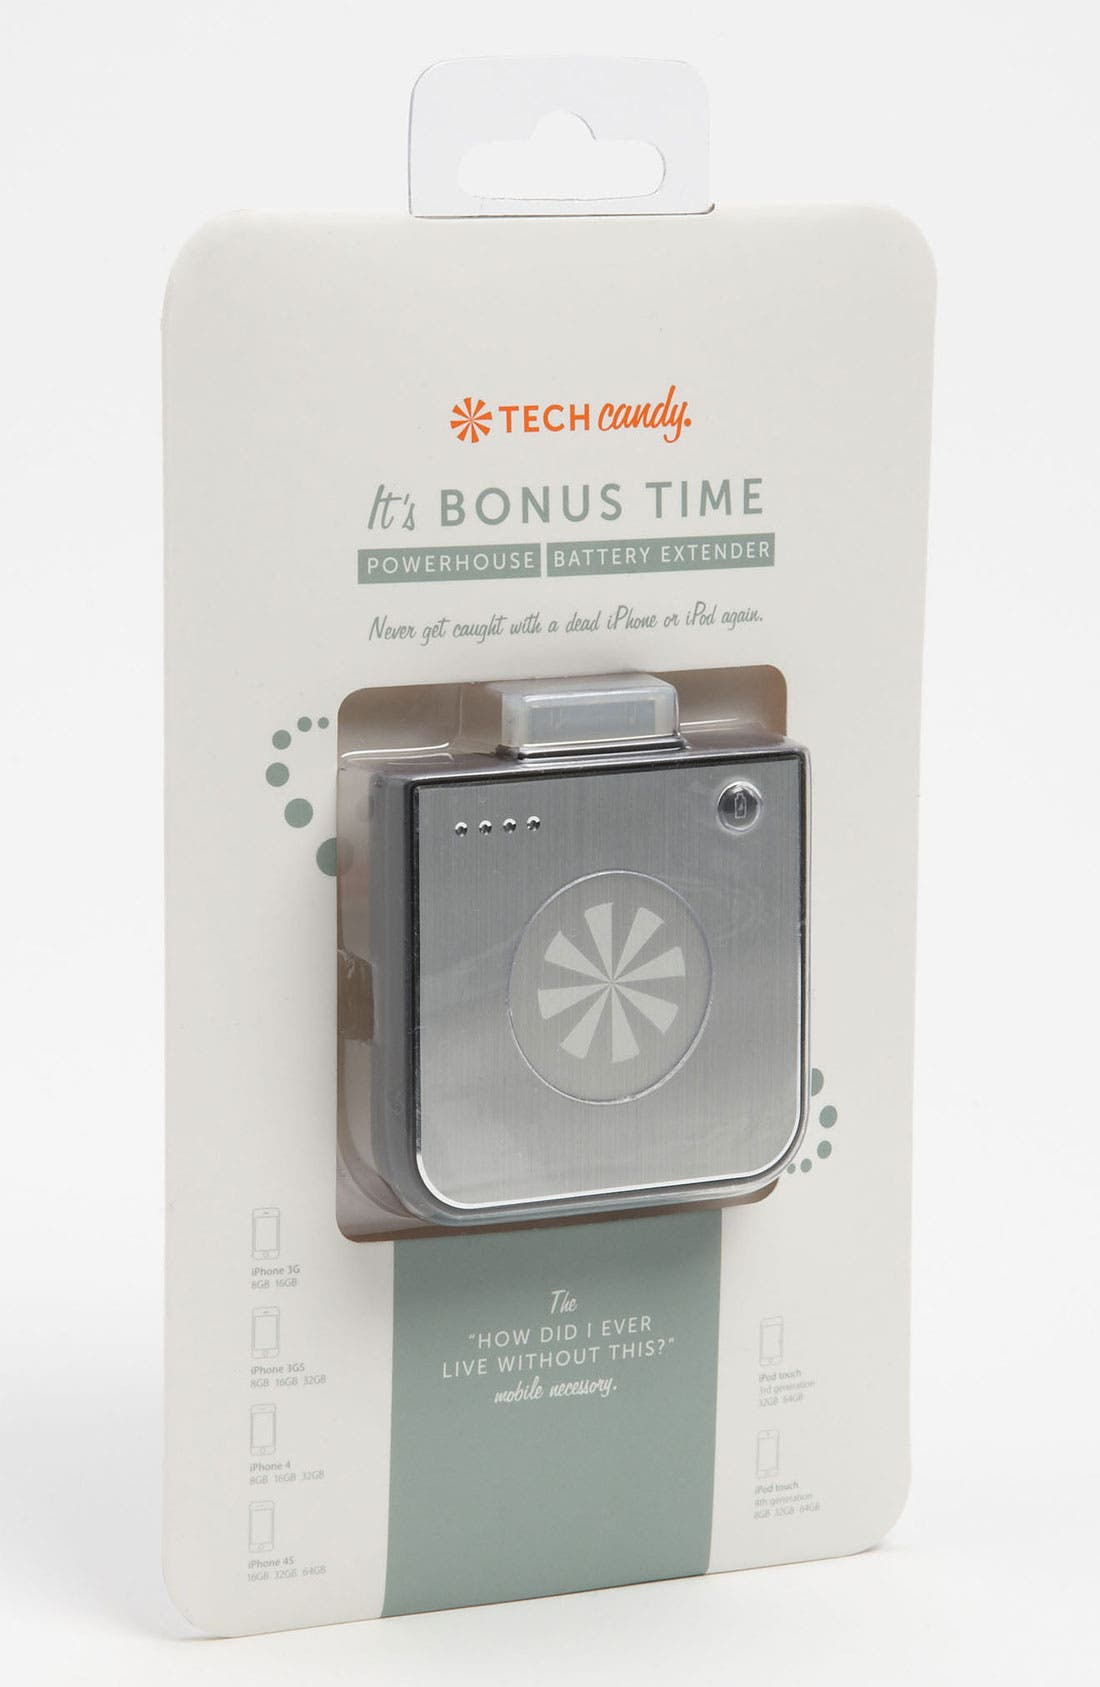 Alternate Image 1 Selected - Tech Candy 'It's Bonus Time - Powerhouse' iPhone & iPod Touch Battery Extender